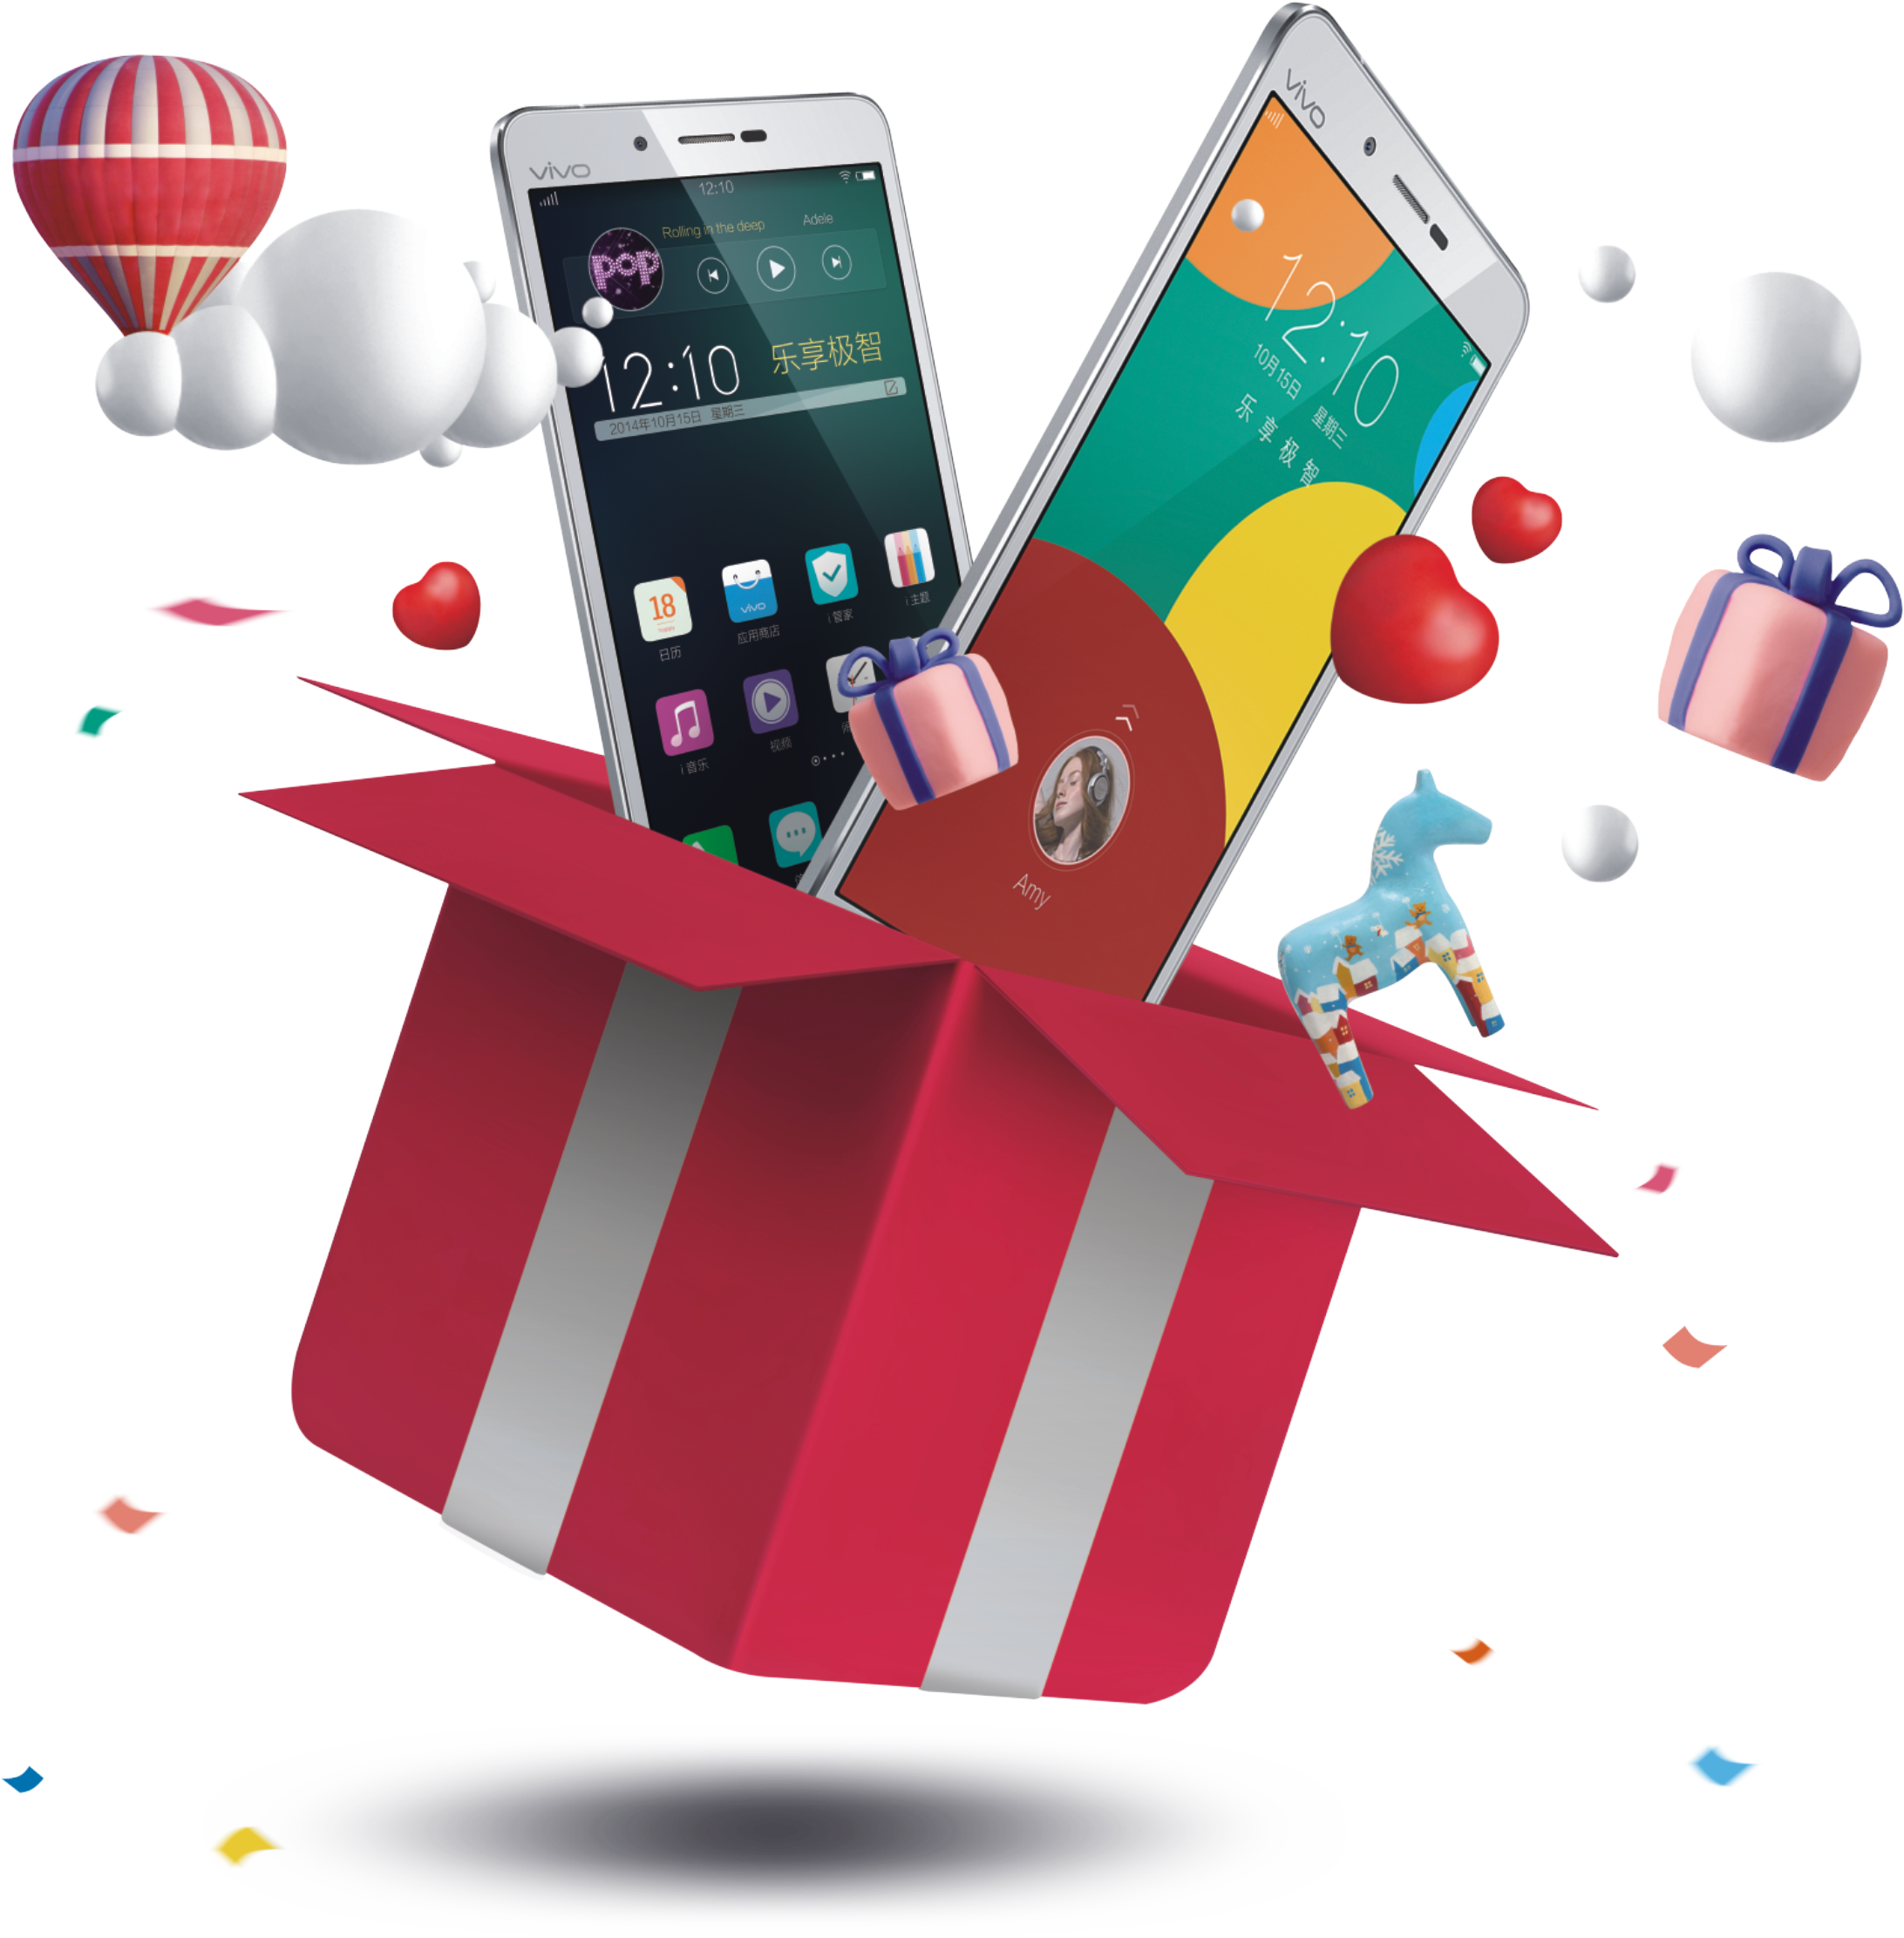 Box Fly Smartphone Court Gift Of Phone PNG Image